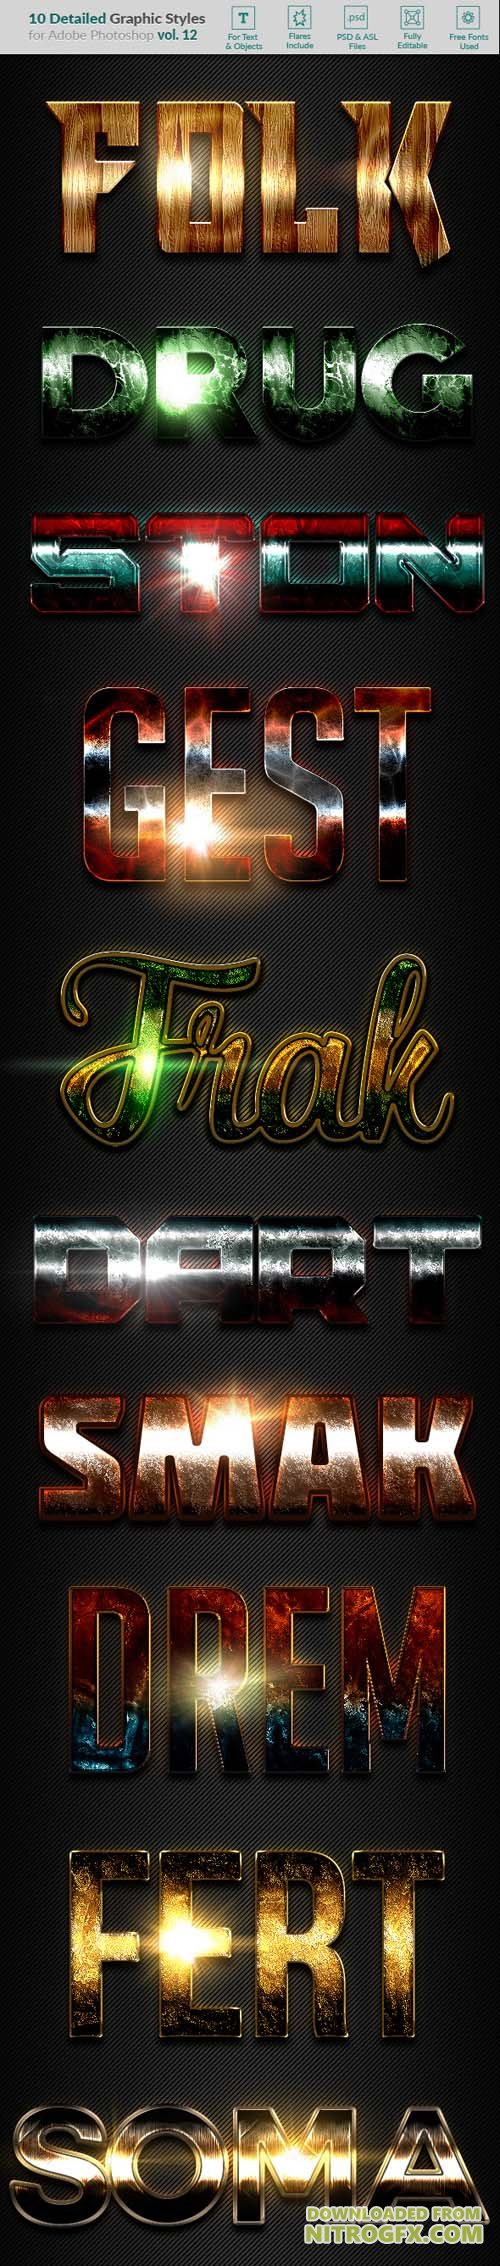 GraphicRiver - 10 Text Effects Vol. 12 20402463